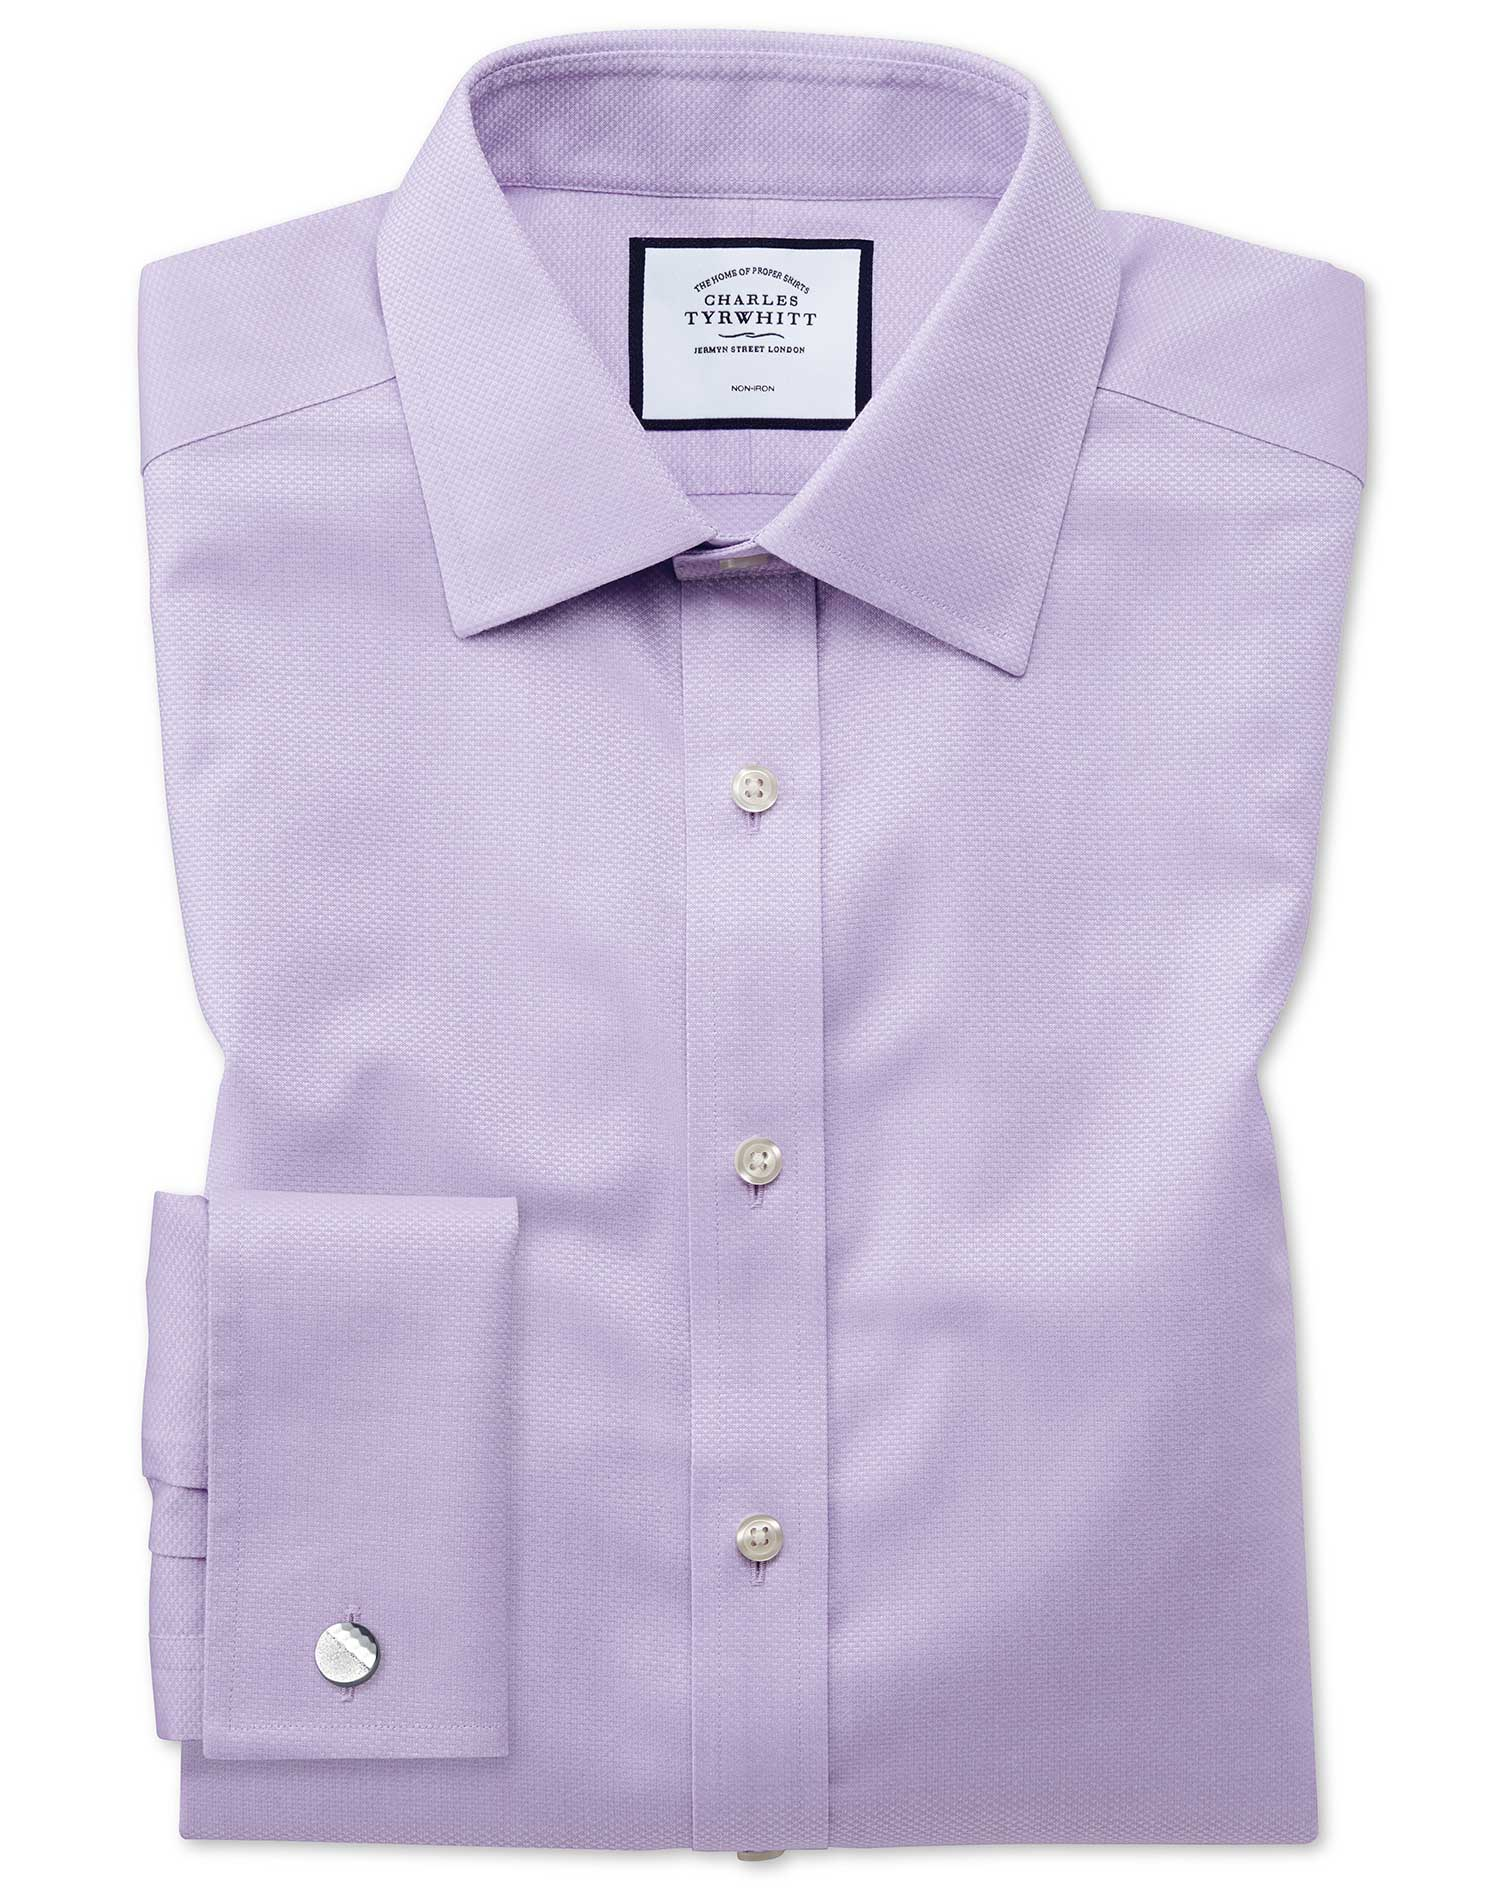 Classic Fit Non-Iron Lilac Triangle Weave Cotton Formal Shirt Single Cuff Size 17/37 by Charles Tyrw